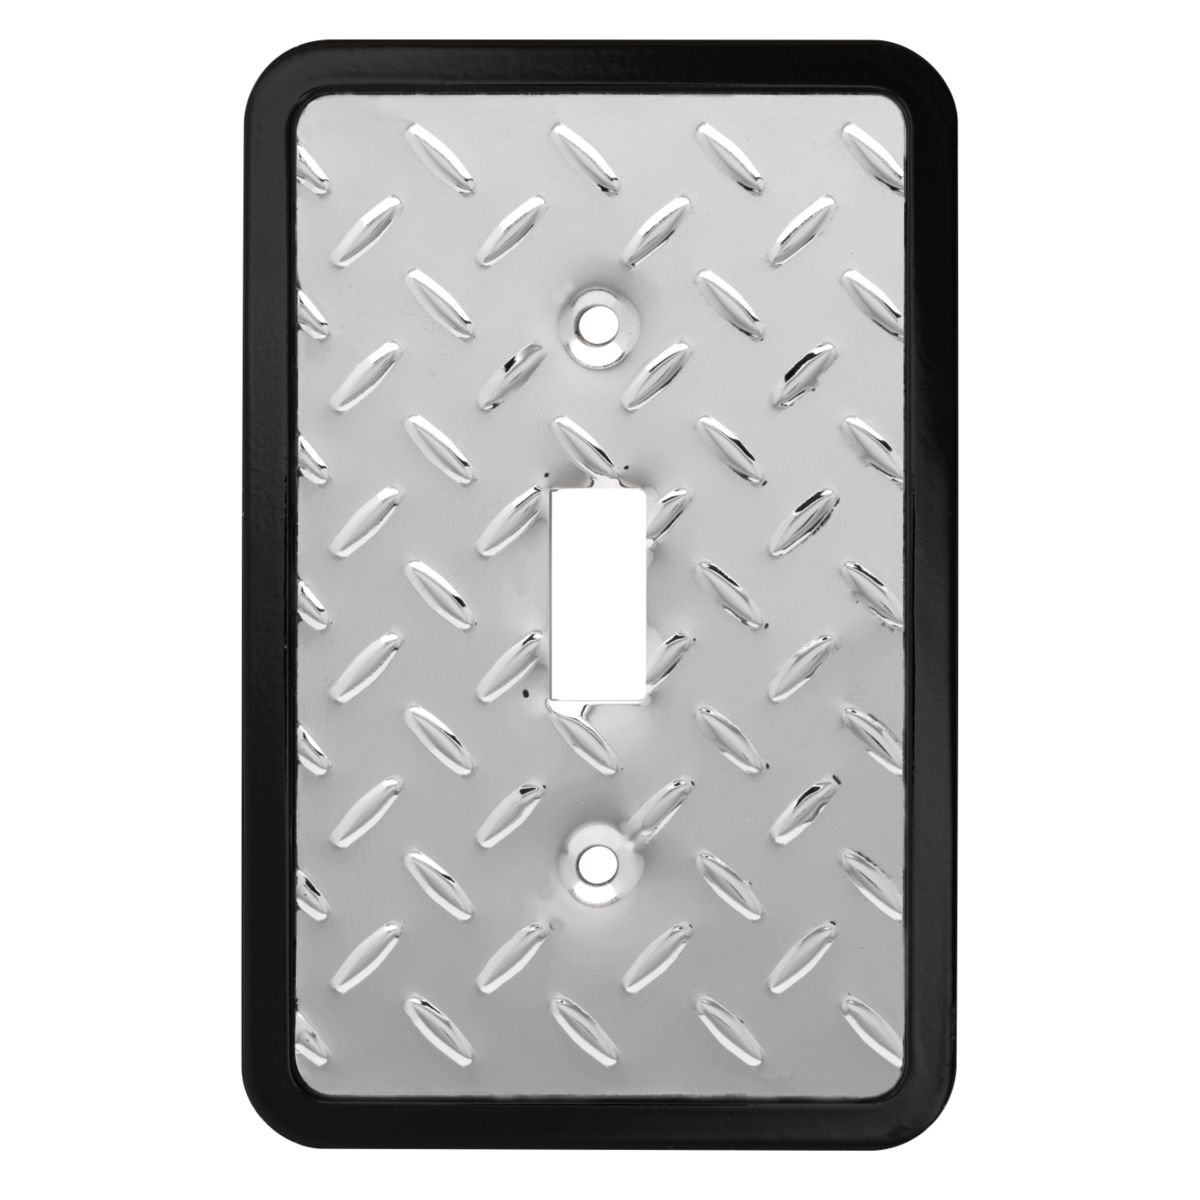 Franklin Brass 135858 Diamond Plate Single Toggle Switch Wall Plate/Switch Plate/Cover